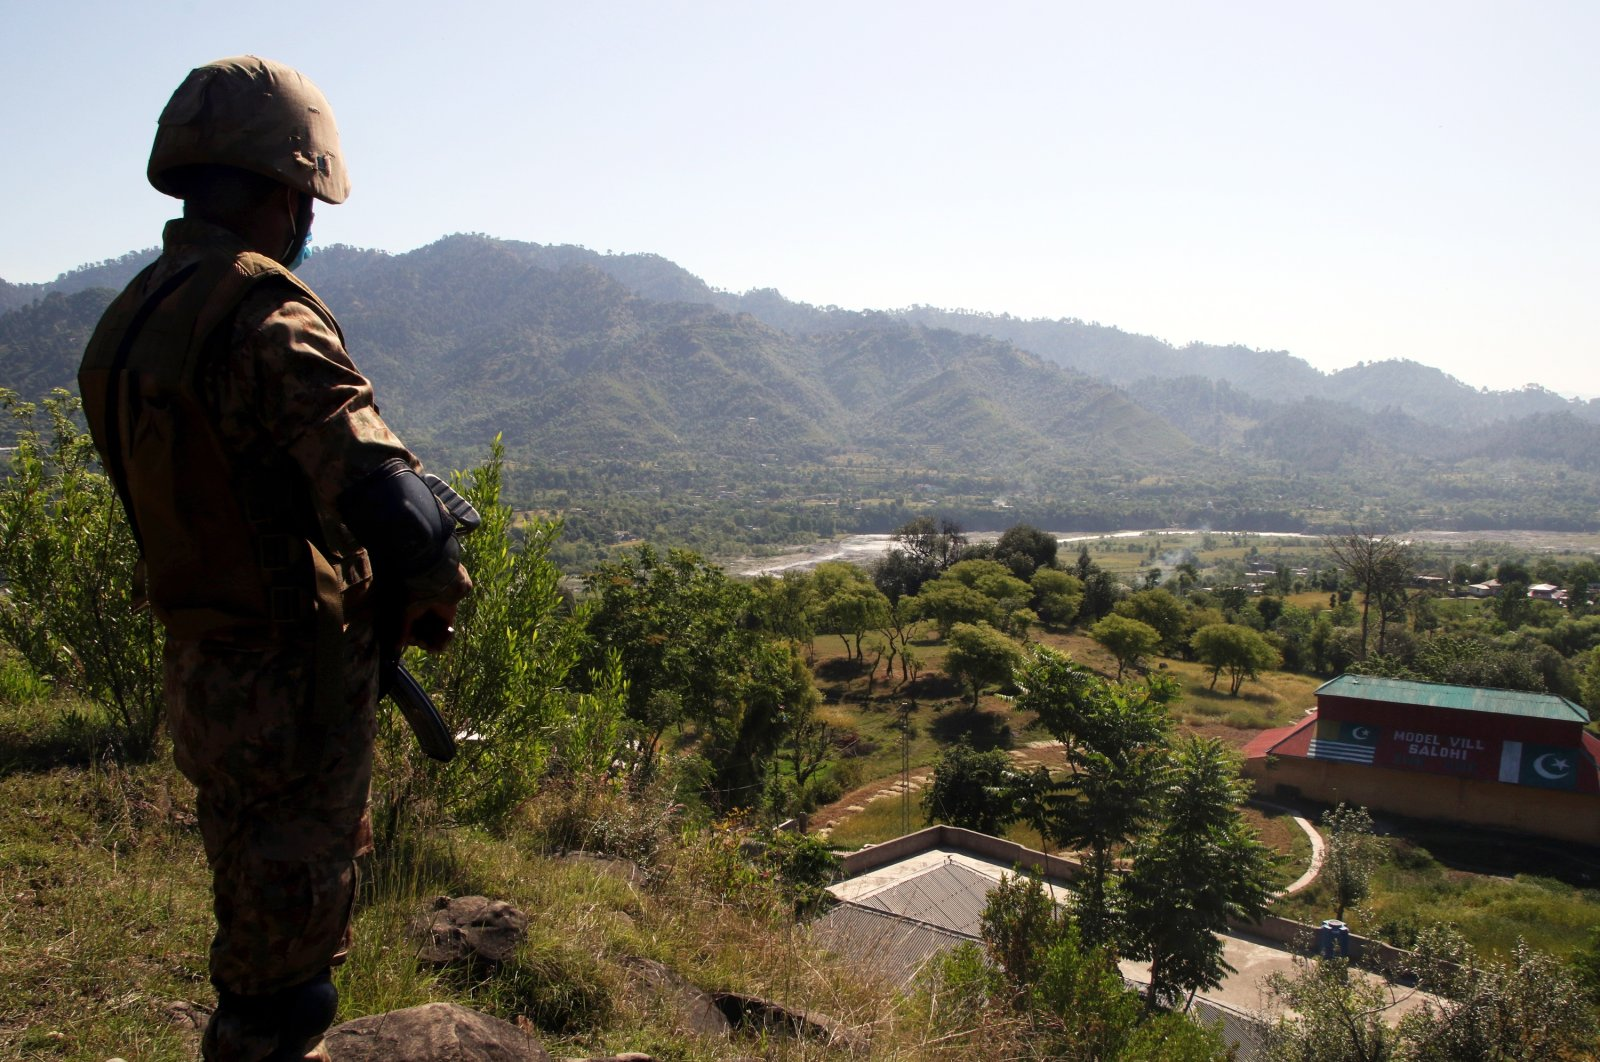 A Pakistani Army soldier stands near a house that was damaged in cross border shelling before the cease-fire, in Salohi village, Poonch district near the Line of Control, Pakistani administered Kashmir, April 26, 2021. (EPA Photo)